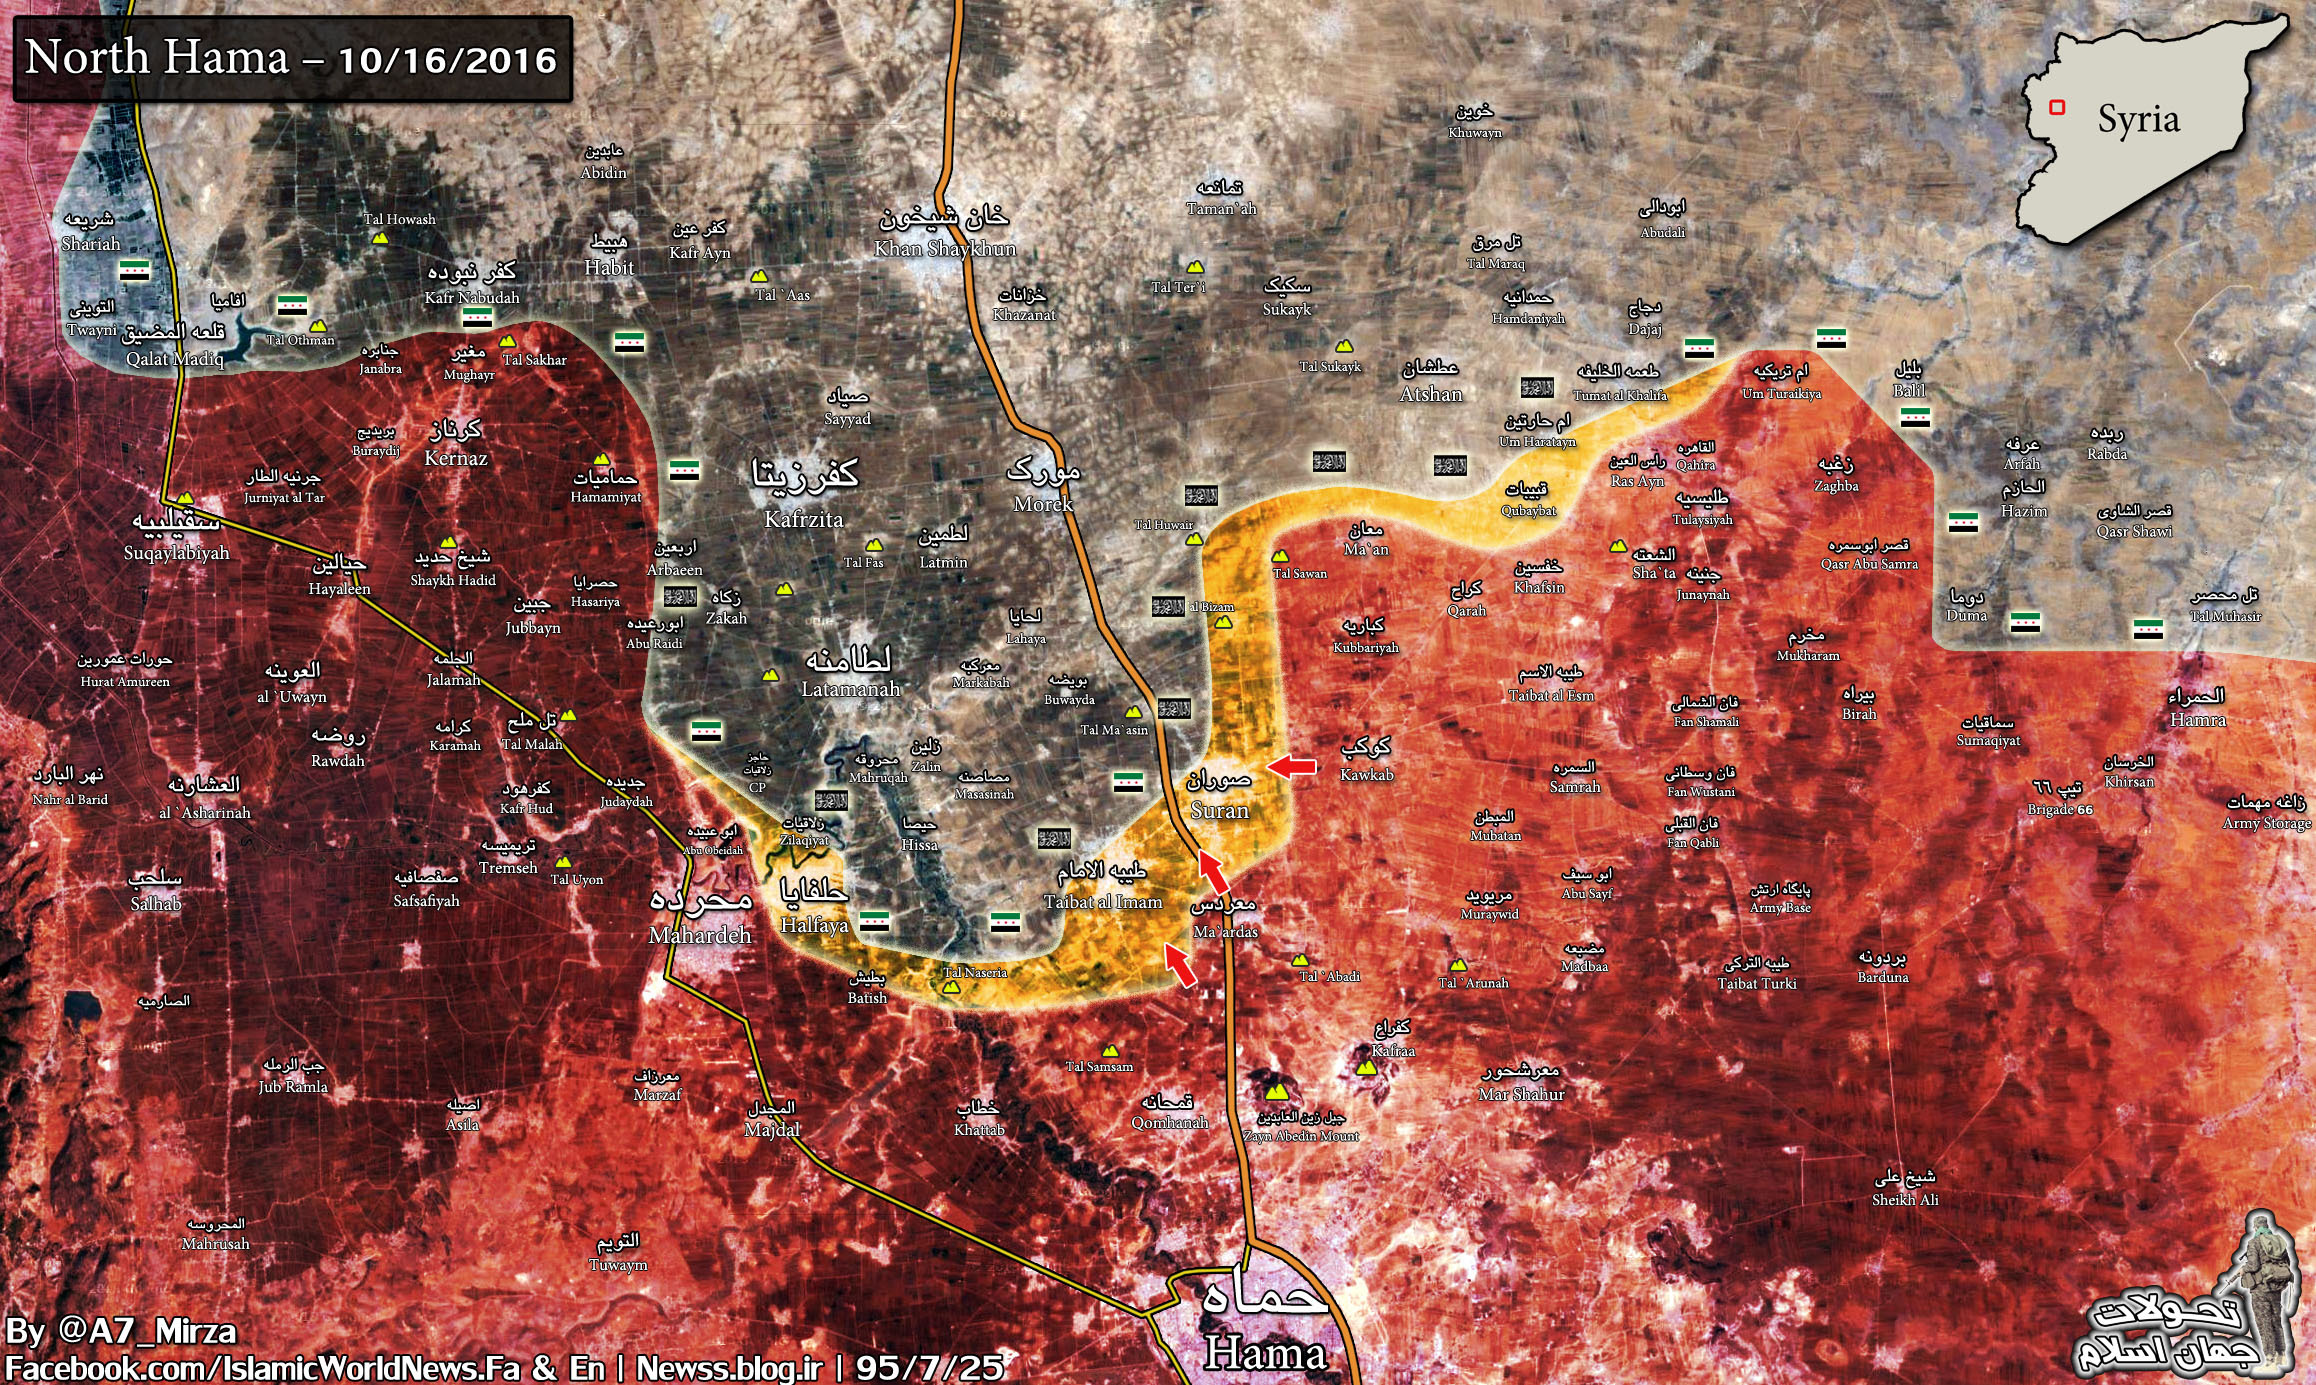 Syrian Army's Tiger Forces Repelled Terrorists' Major Attack on Ma'ardas in Northern Hama